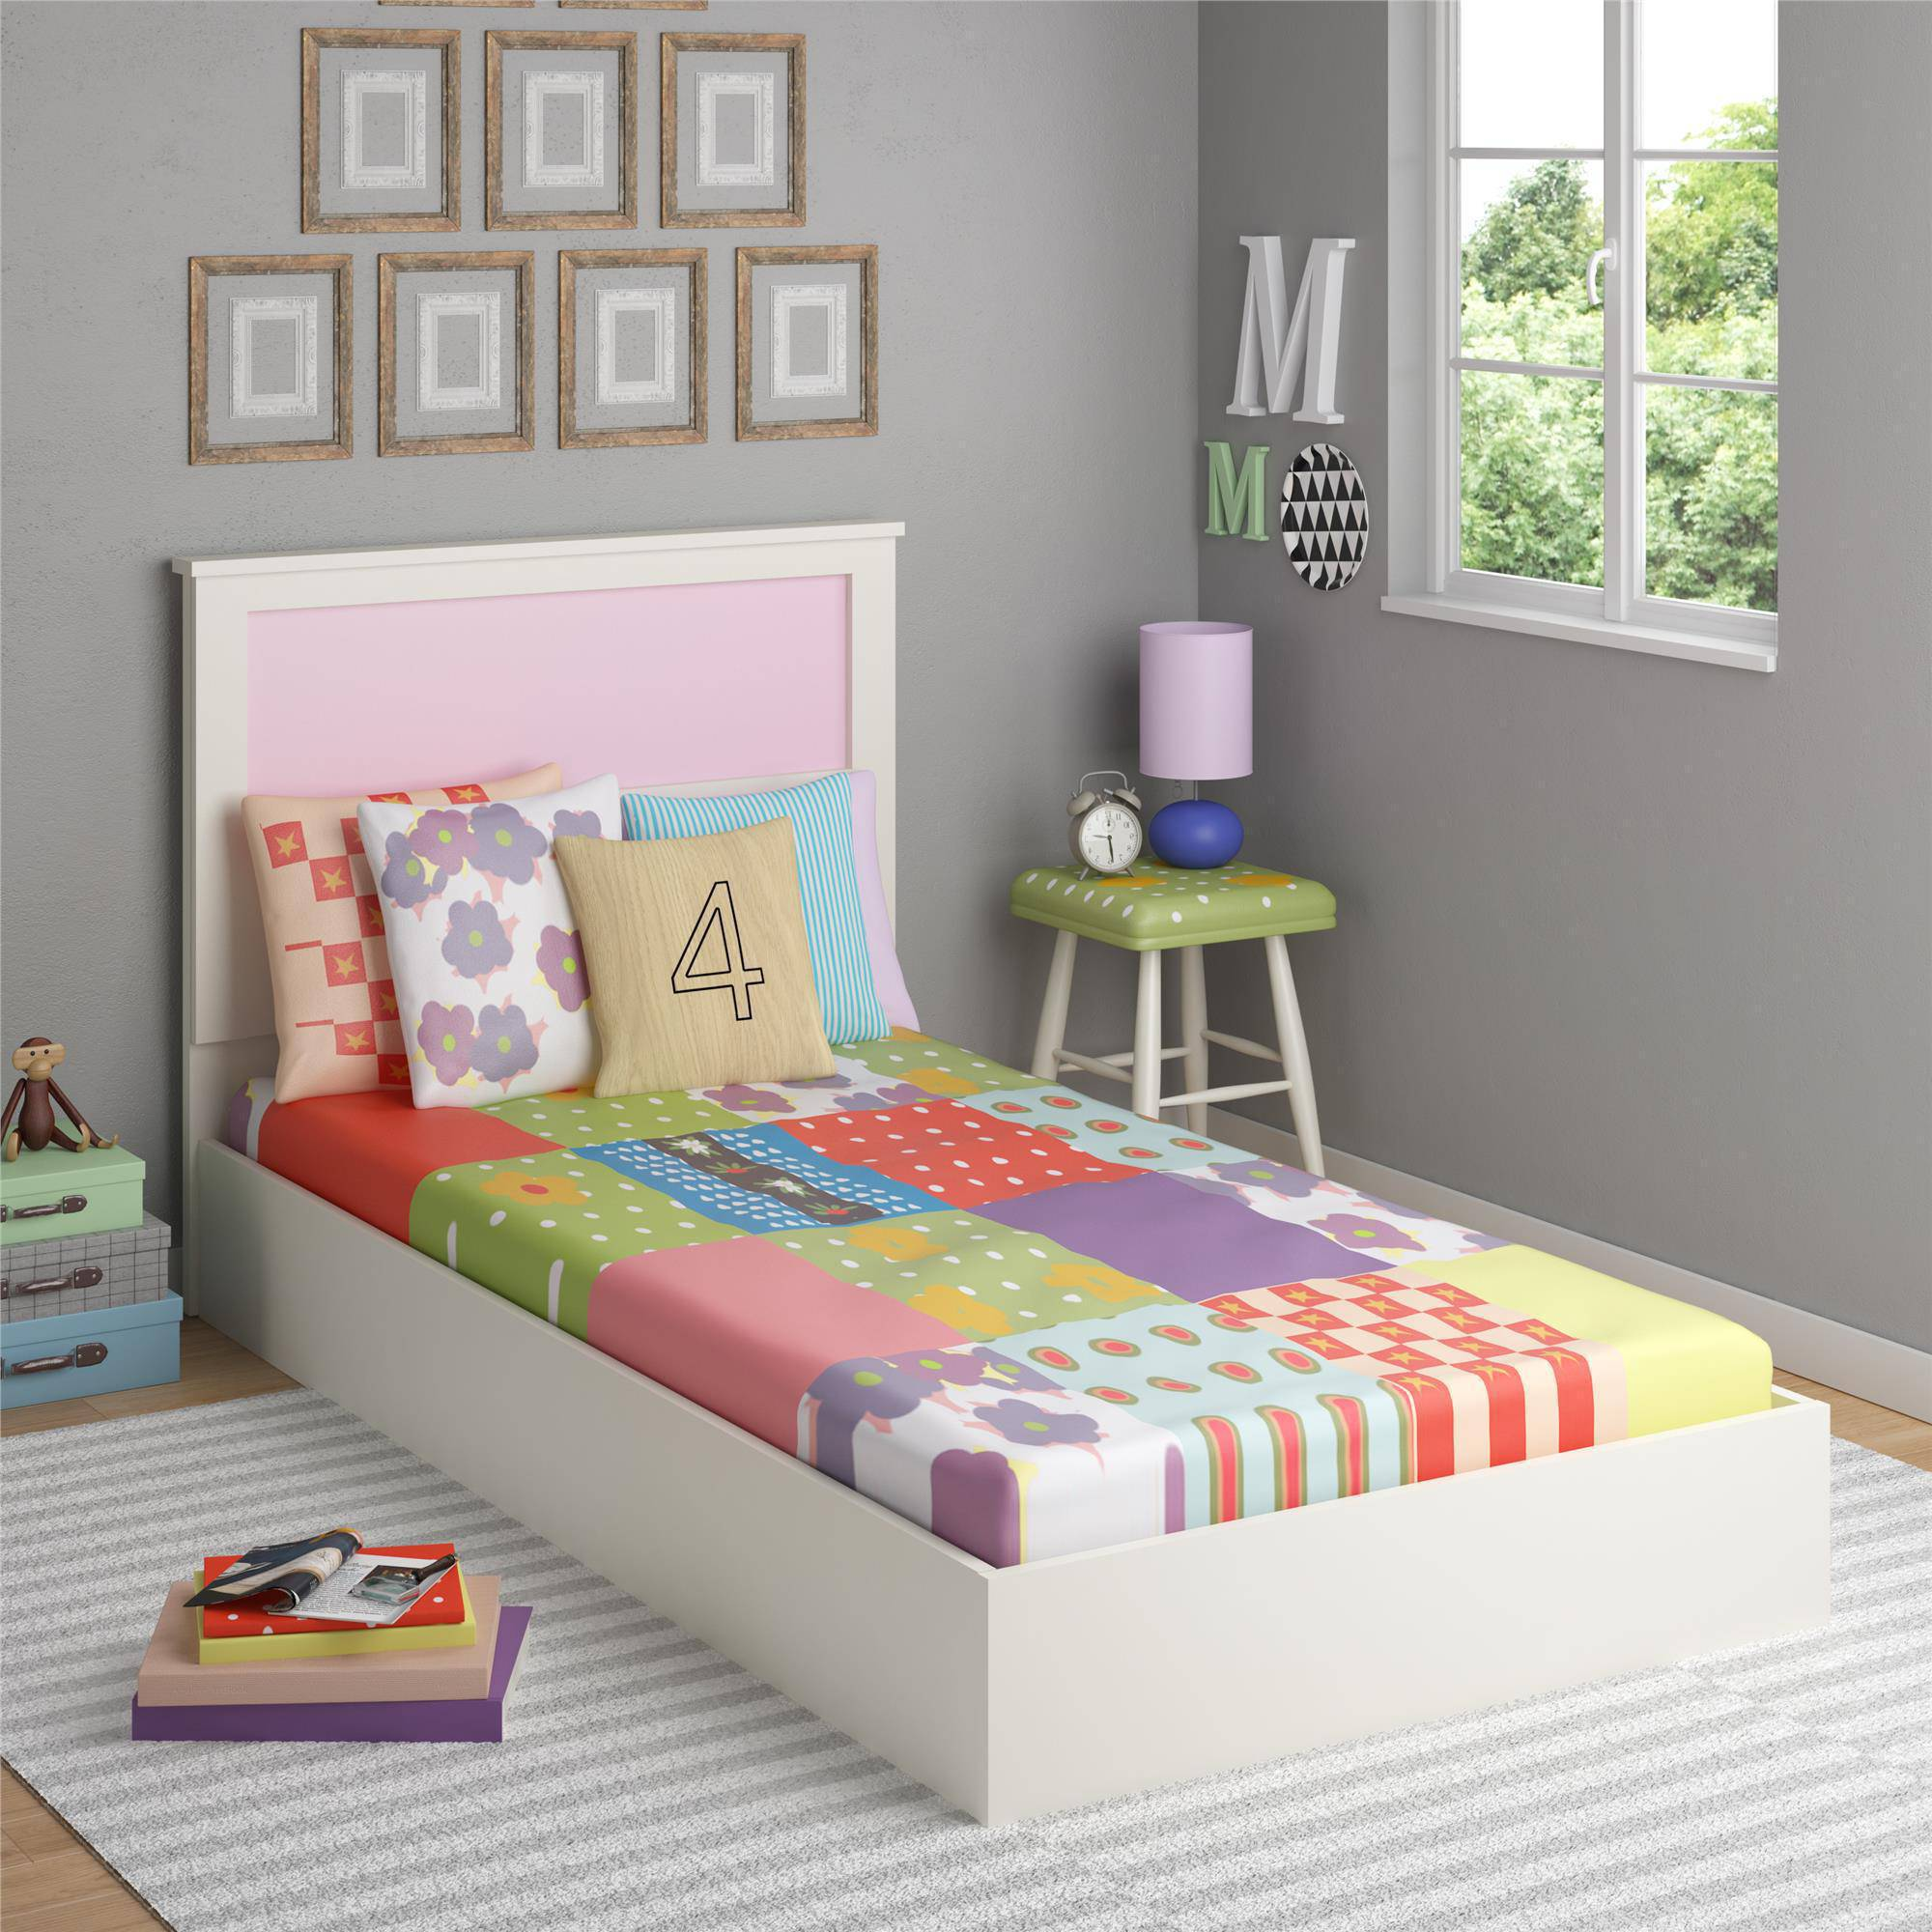 Ameriwood Home Skyler Twin Bed with Reversible Headboard, Multiple Colors